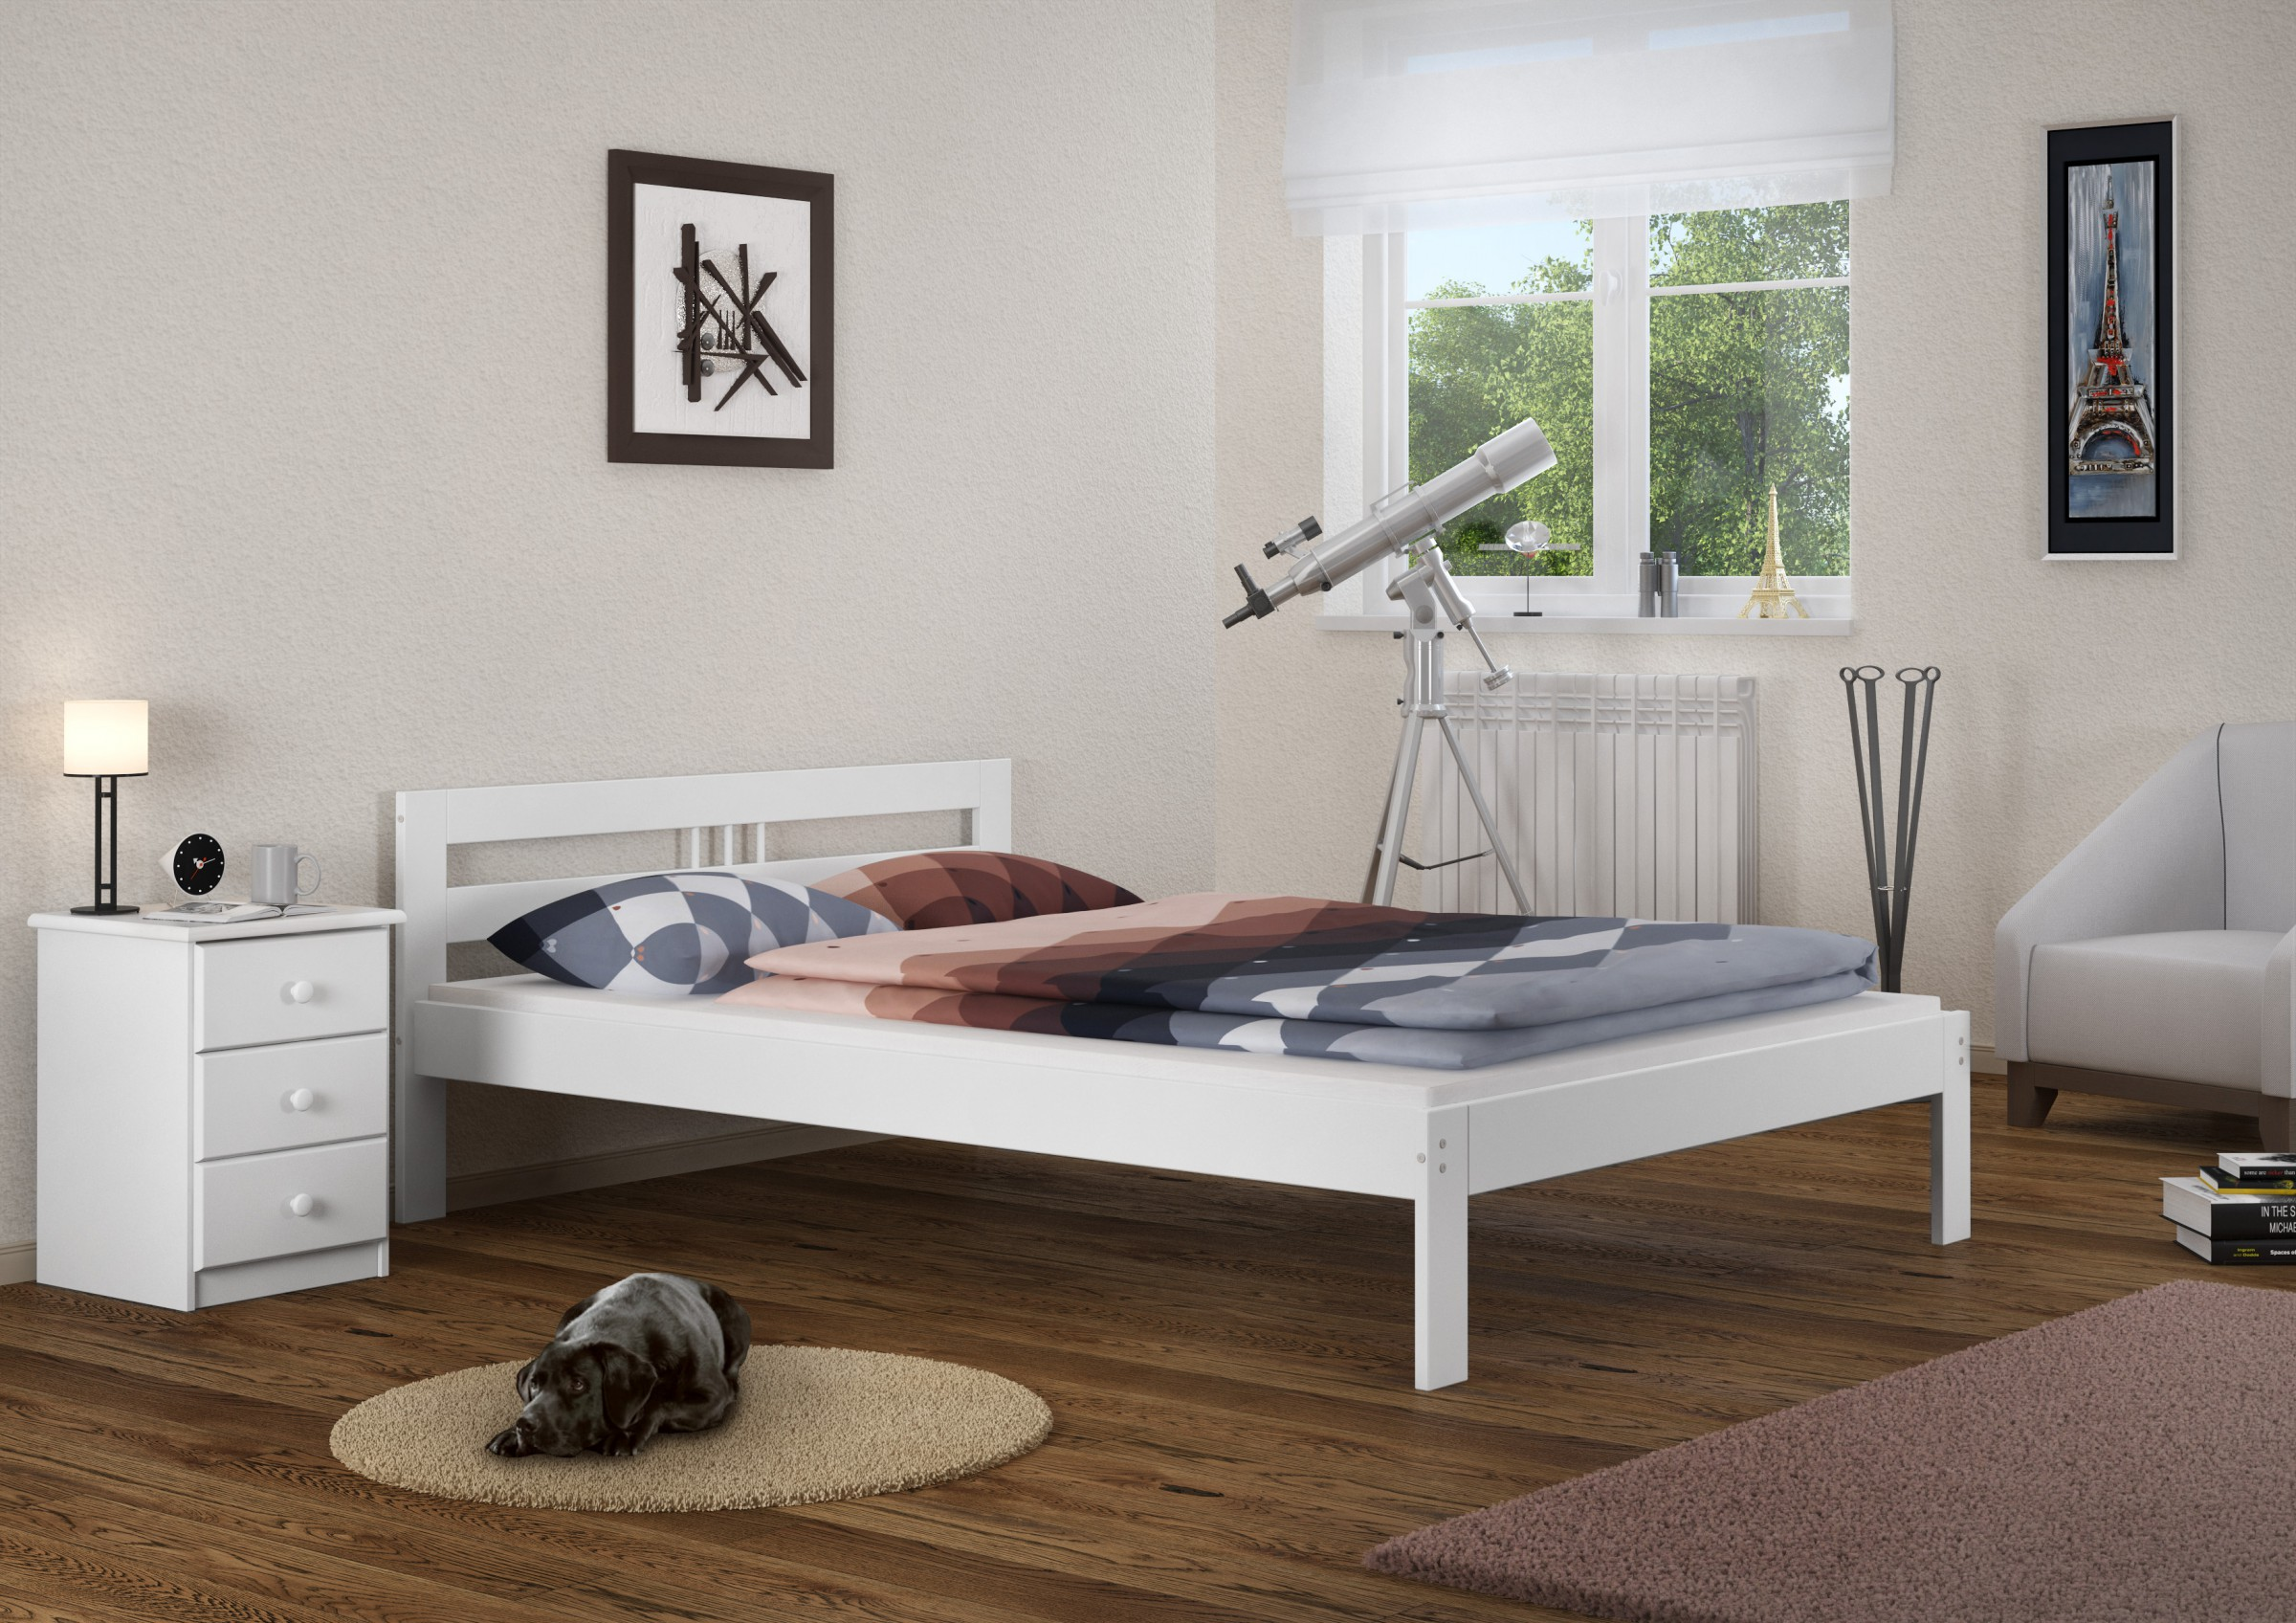 massivholzbett weiss kiefer jugendbett 120x200 futonbett. Black Bedroom Furniture Sets. Home Design Ideas